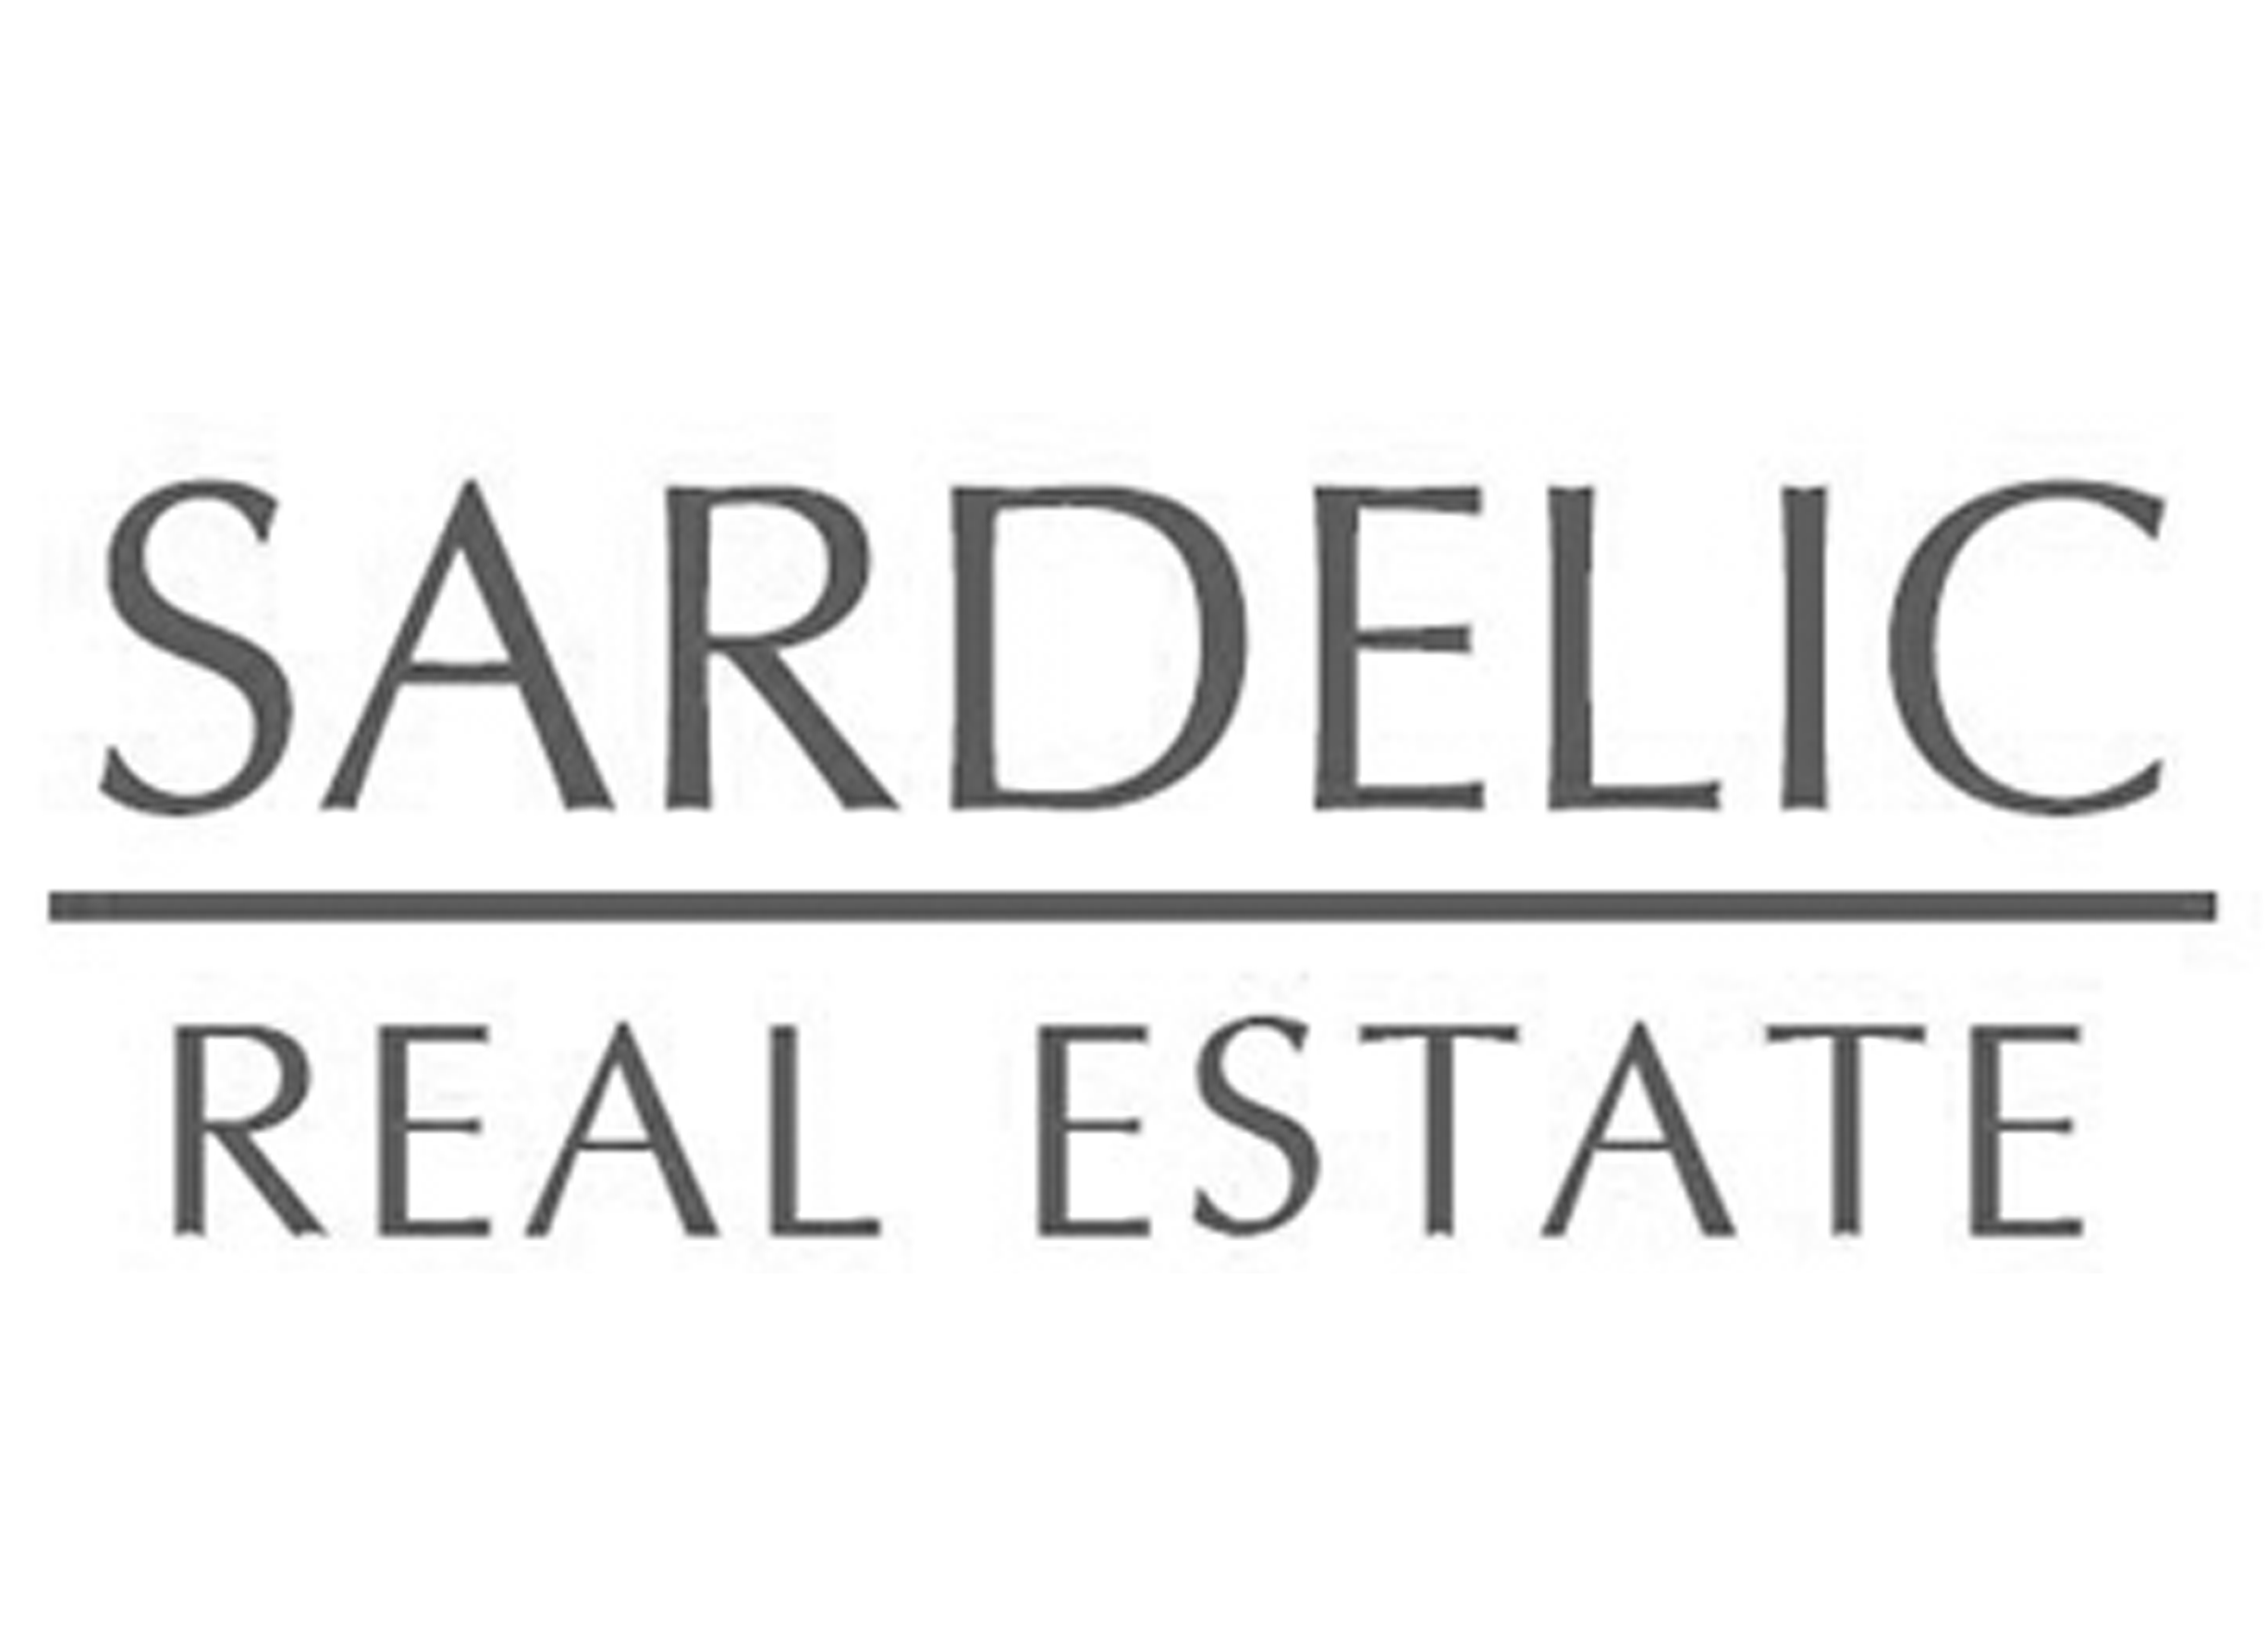 Sardelic Real Estate